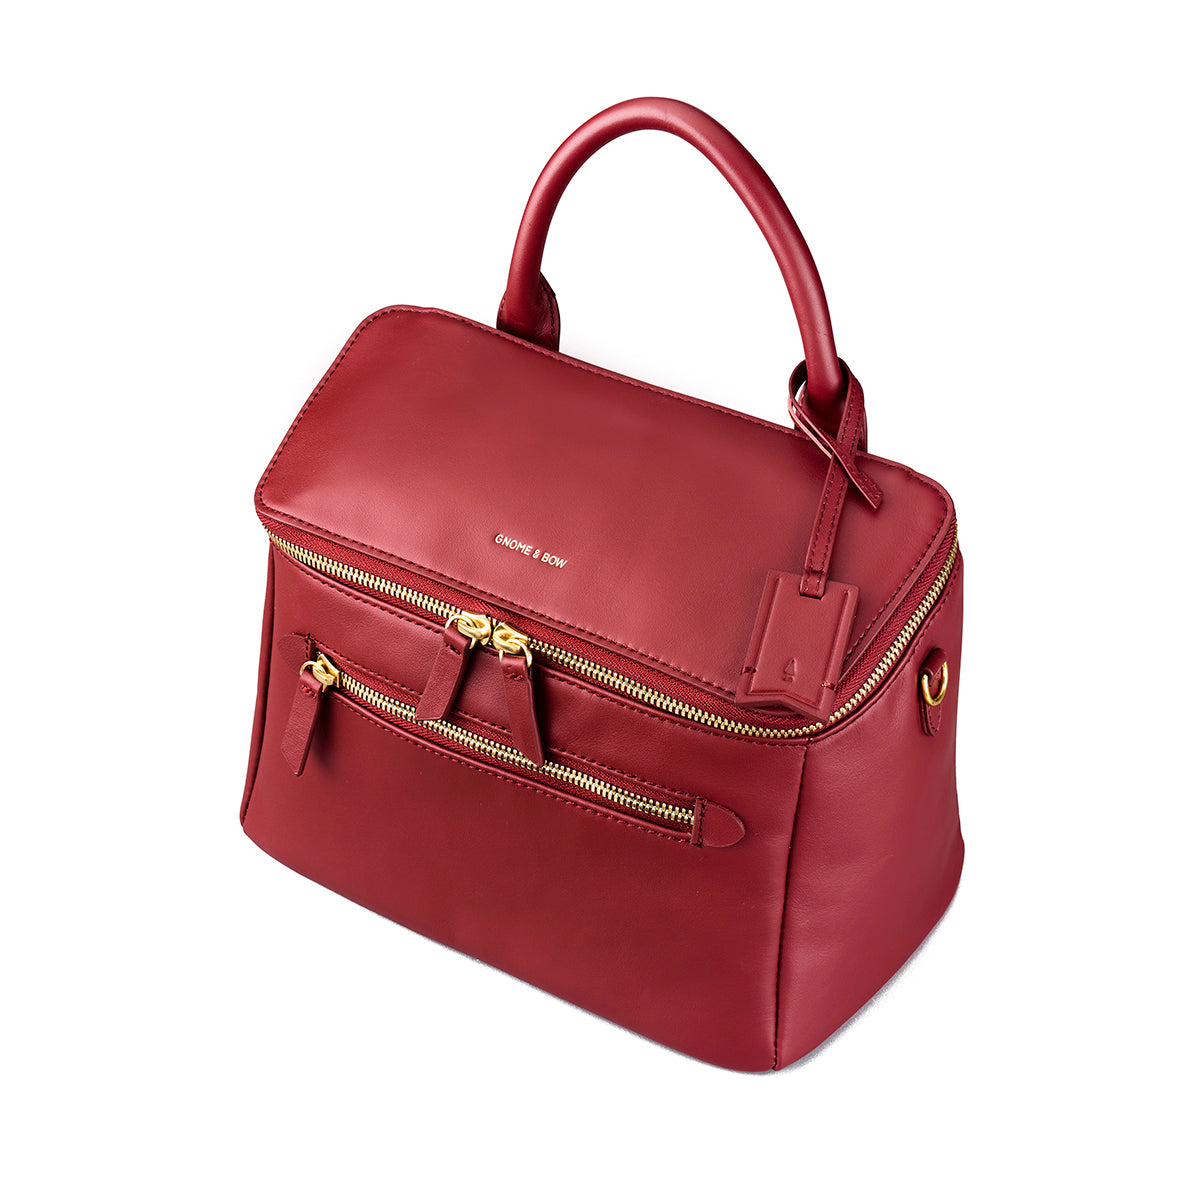 D'ryna Handbag (Leather)